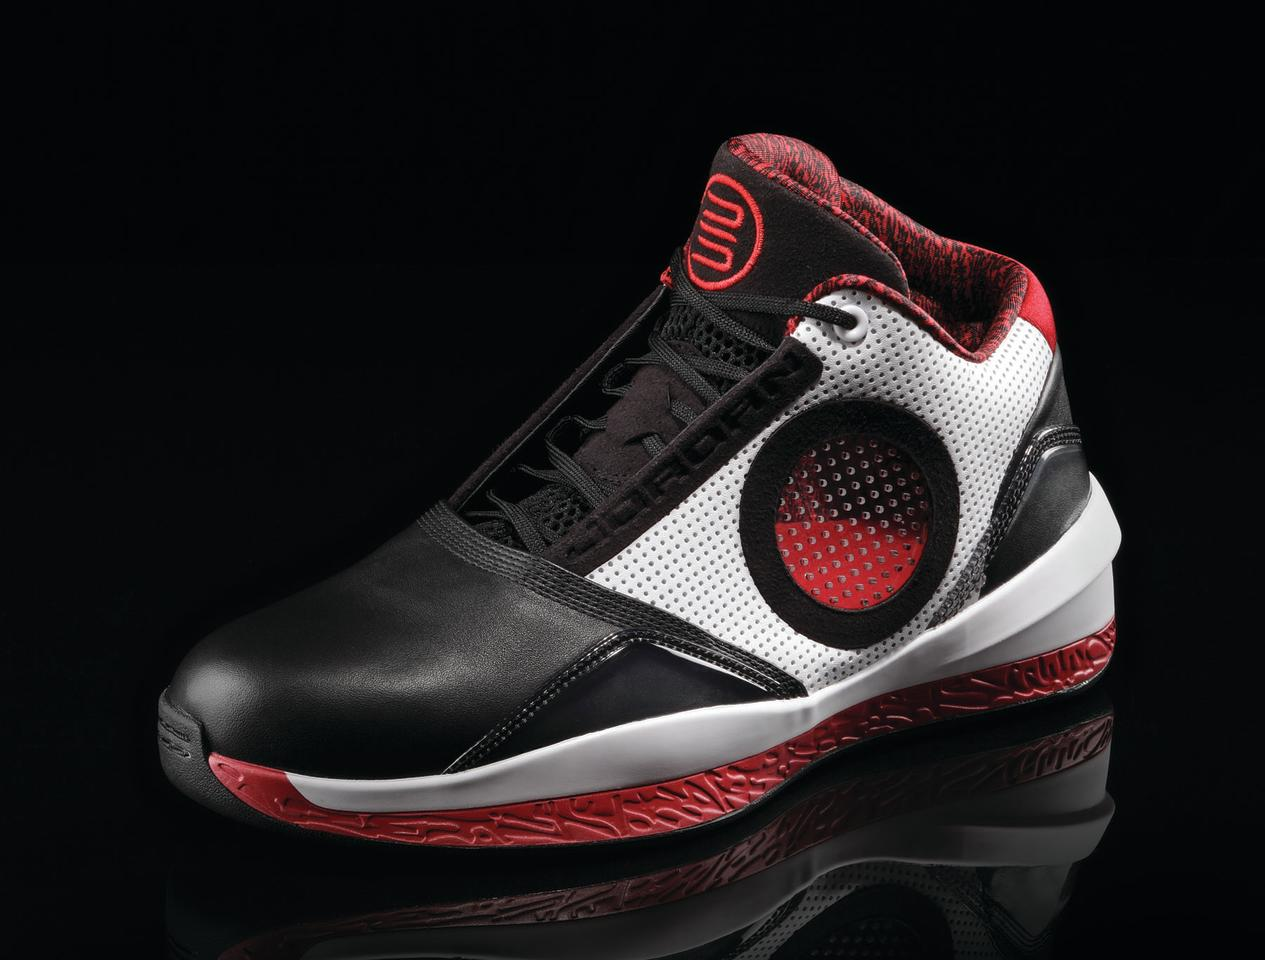 "<p>Air Jordan 2010 - ""Full Speed Ahead"" (2010): The 25th edition celebrates MJ's ability to ""see through"" oponents. (Photo Courtesy of Nike)</p>"